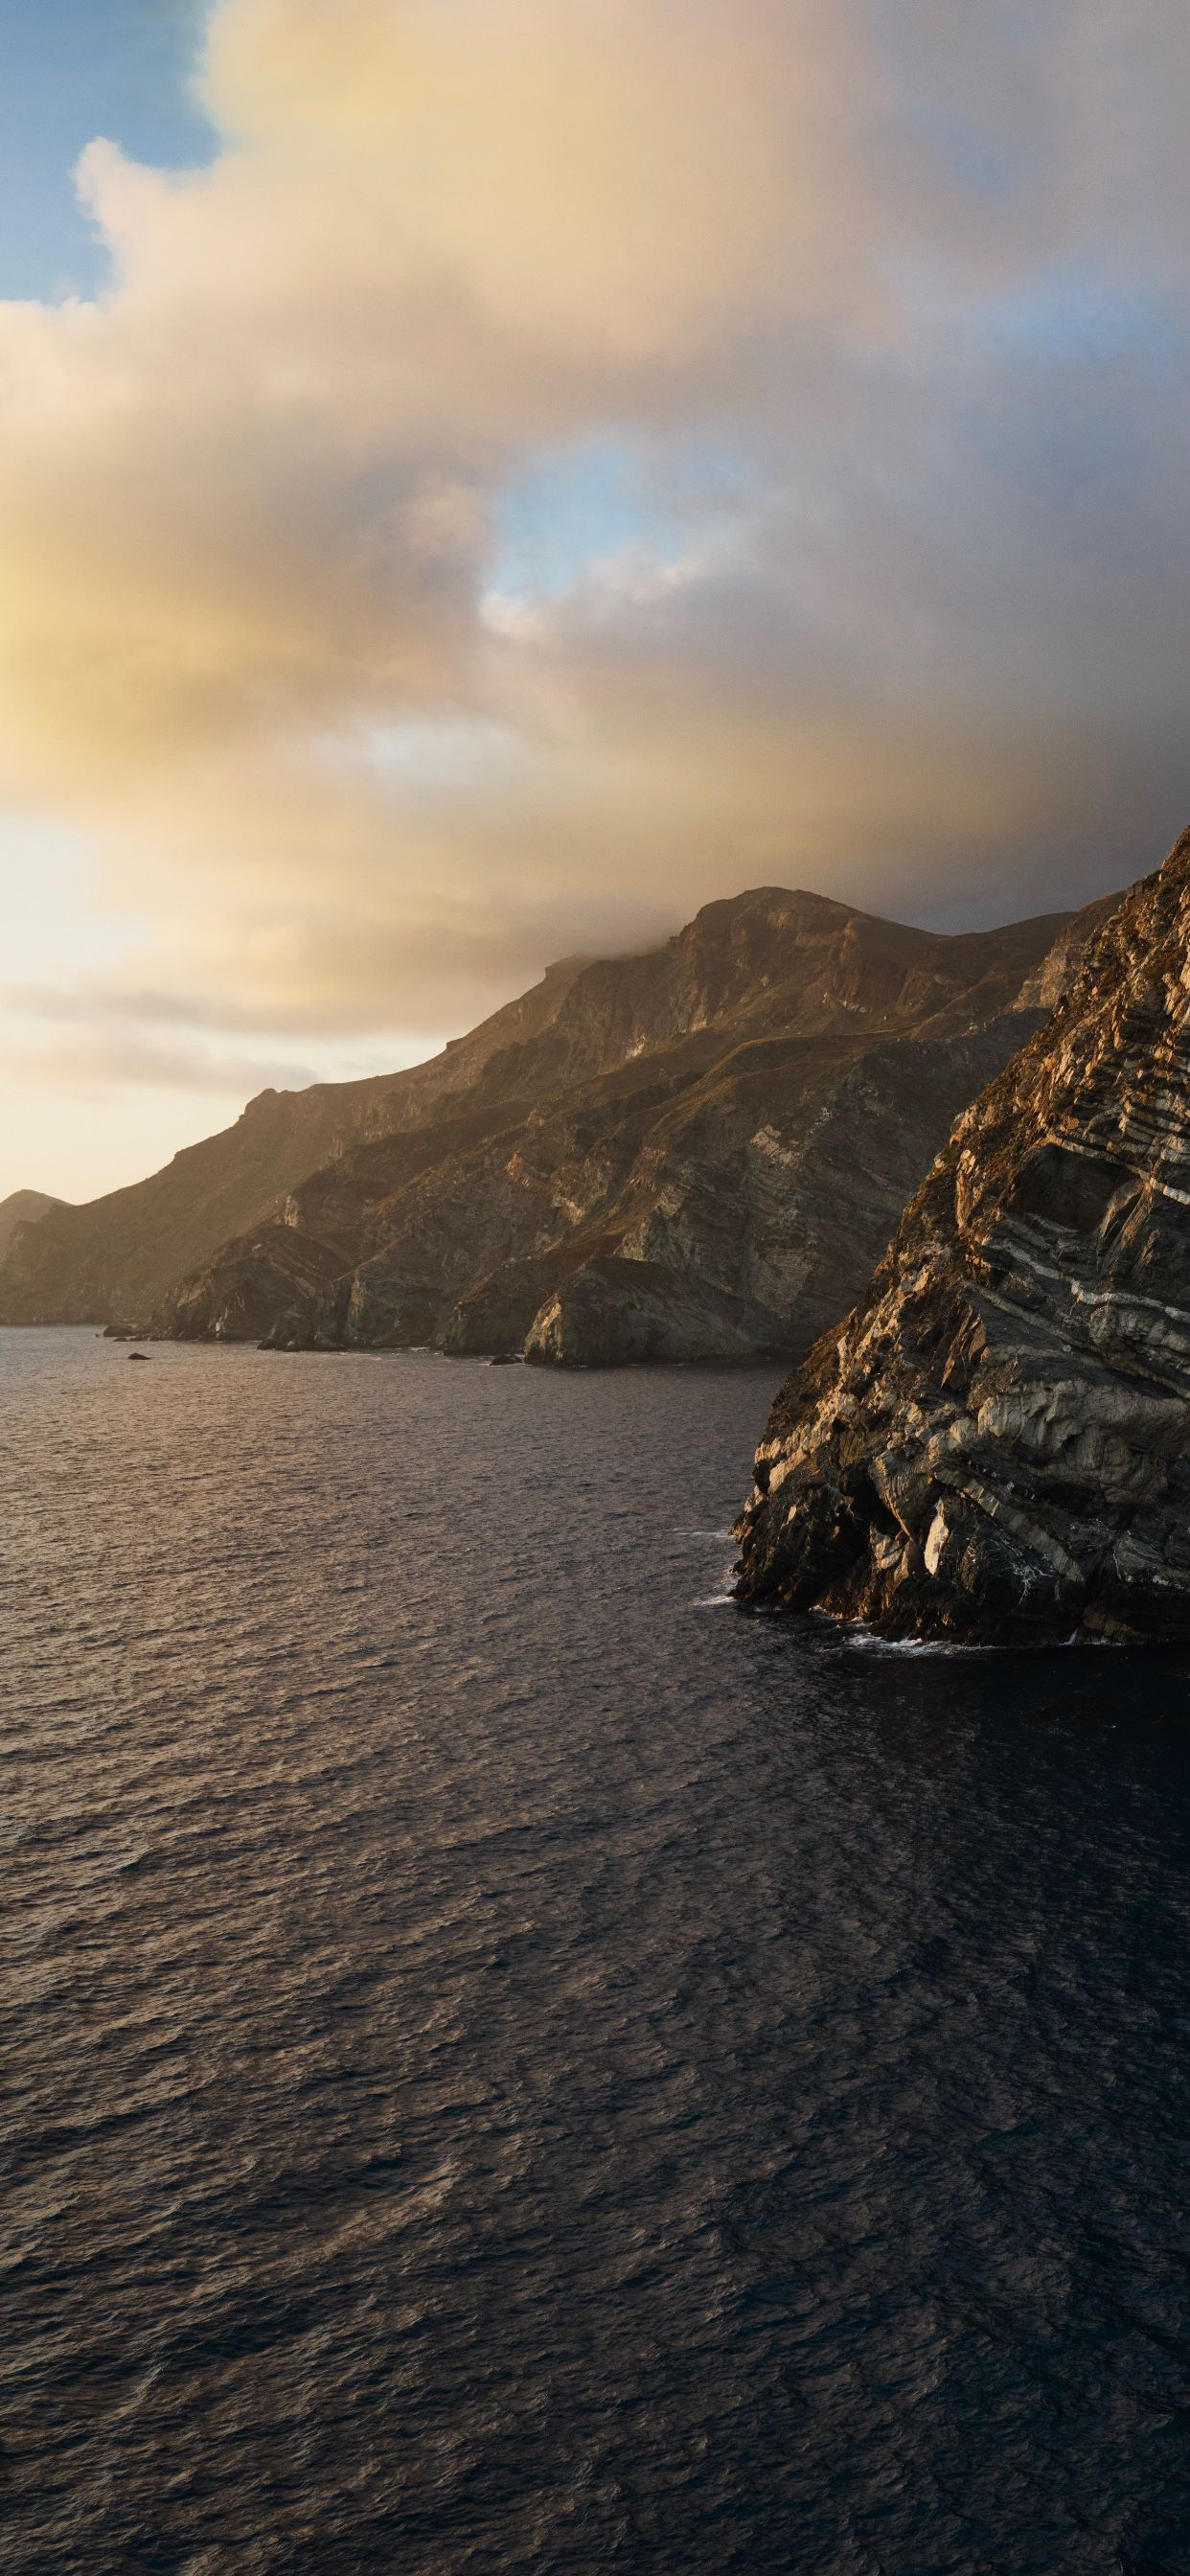 Download Macos Catalina Official Wallpaper Here Full Hd